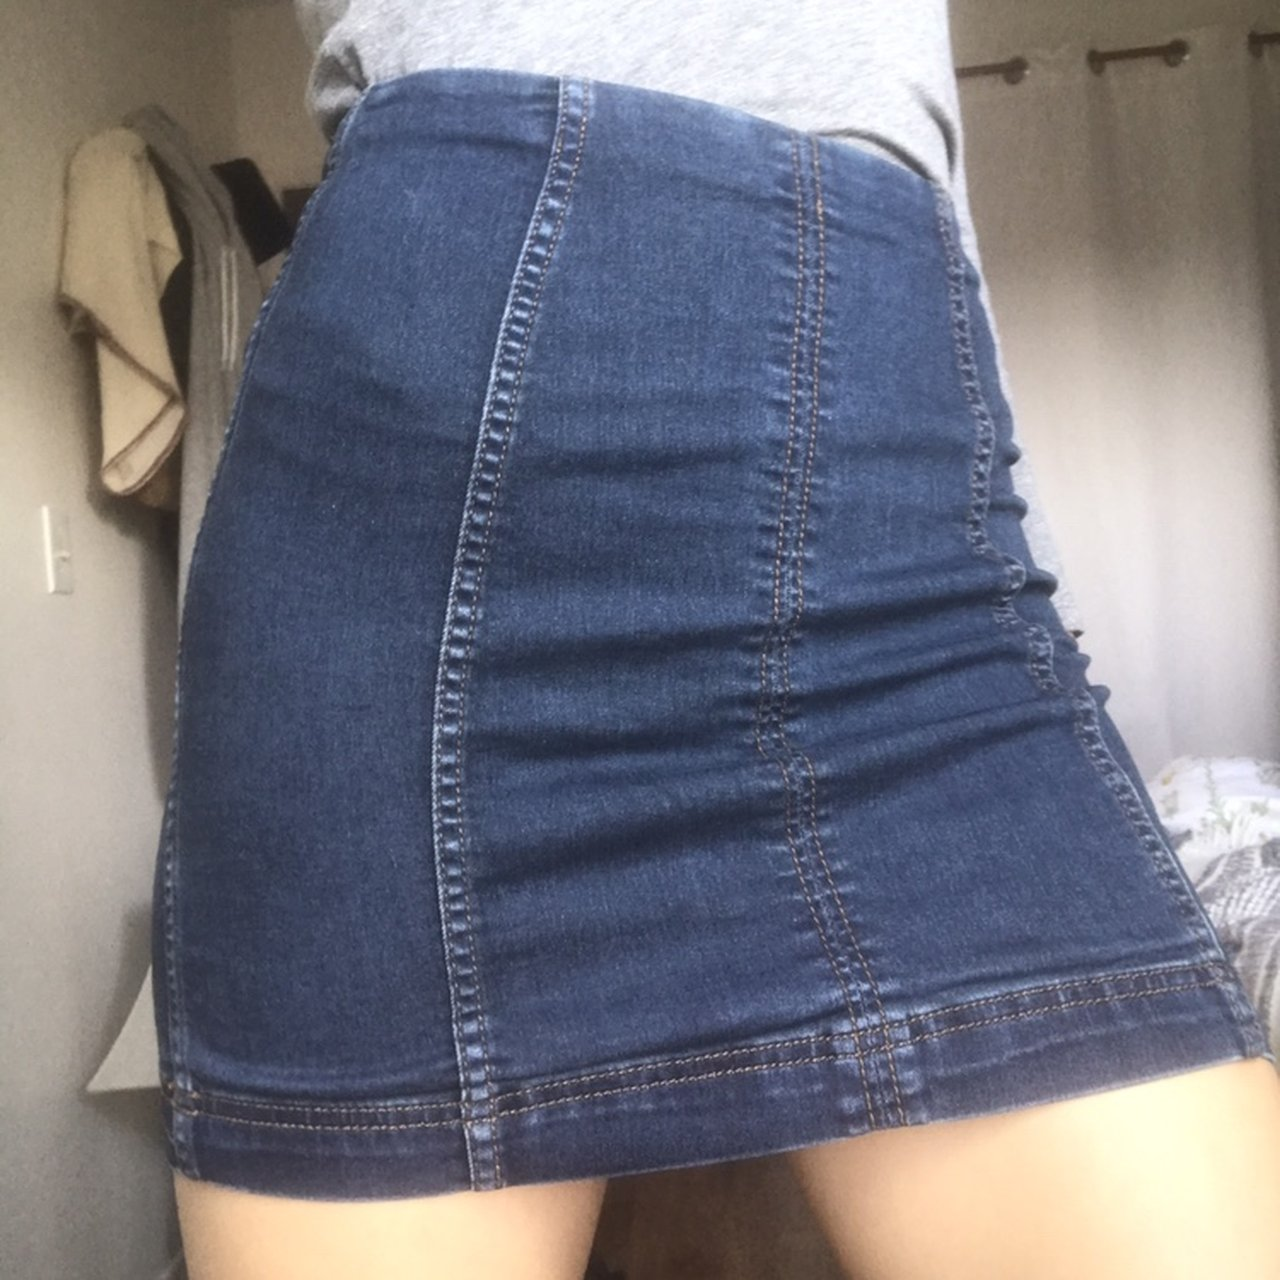 825814a013 Denim Skirts Made From Jeans – DACC